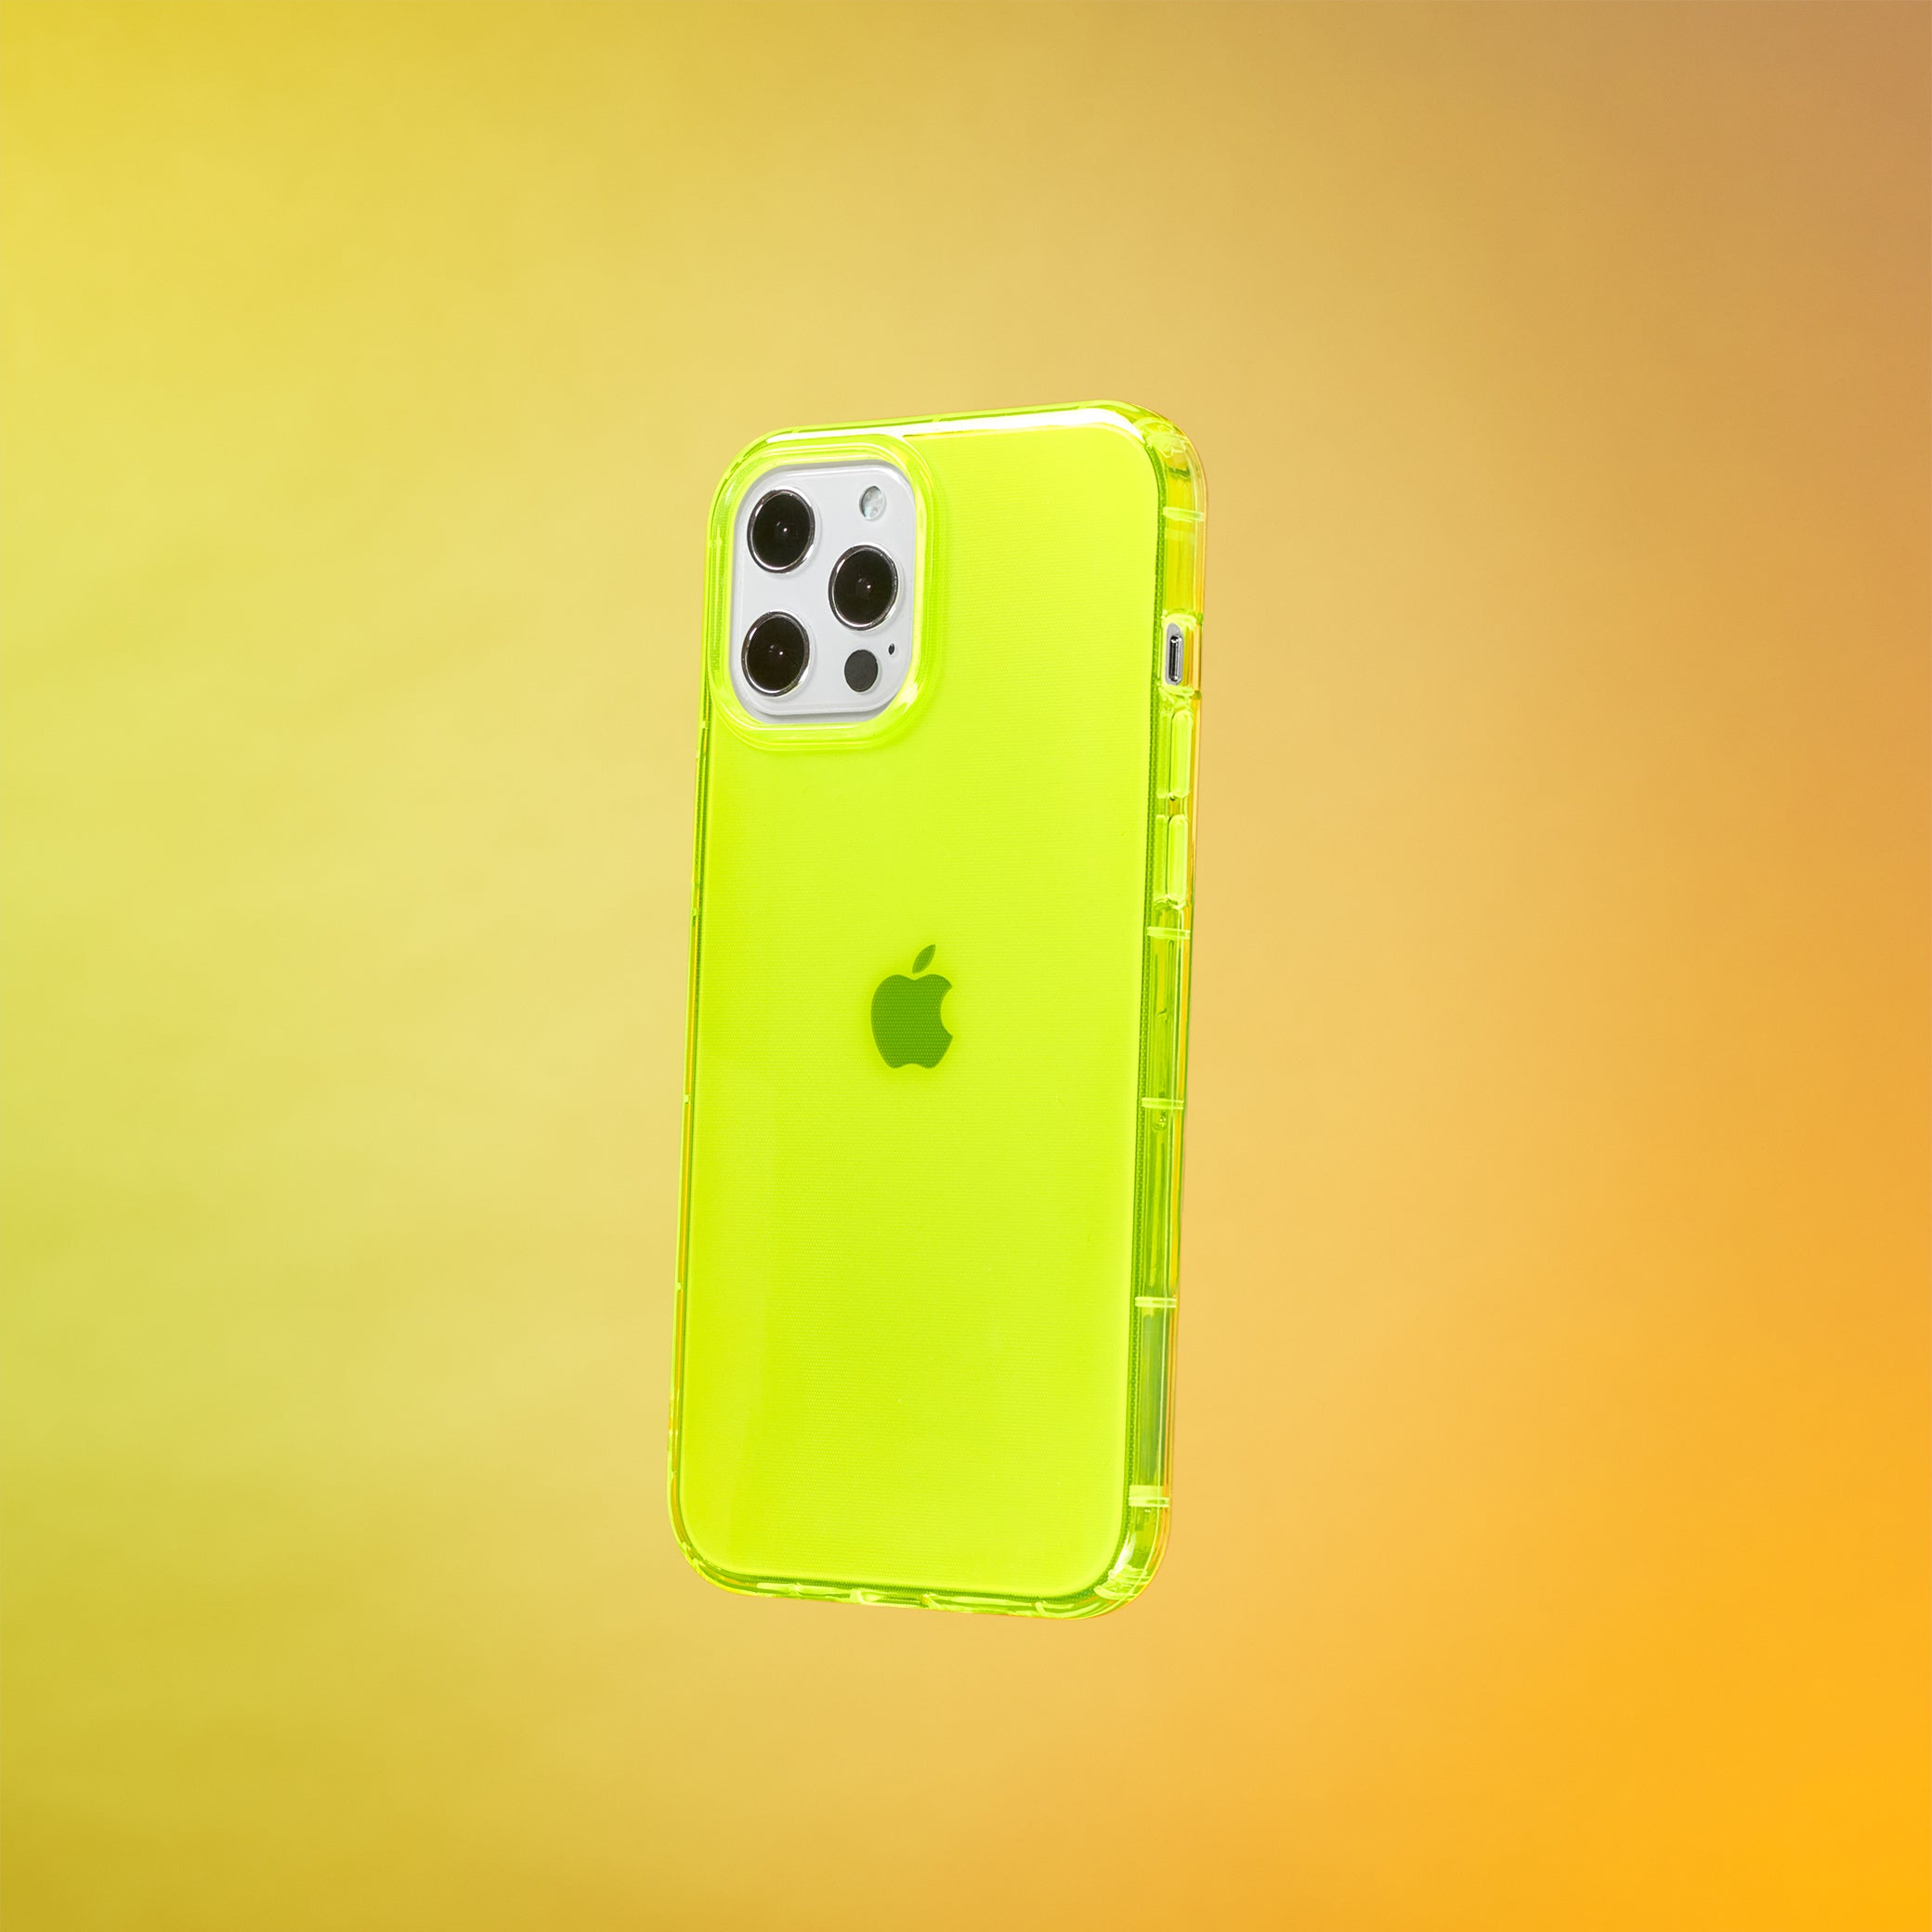 Highlighter Case for iPhone 12 Pro Max - Conspicuous Neon Yellow – STEEPLAB